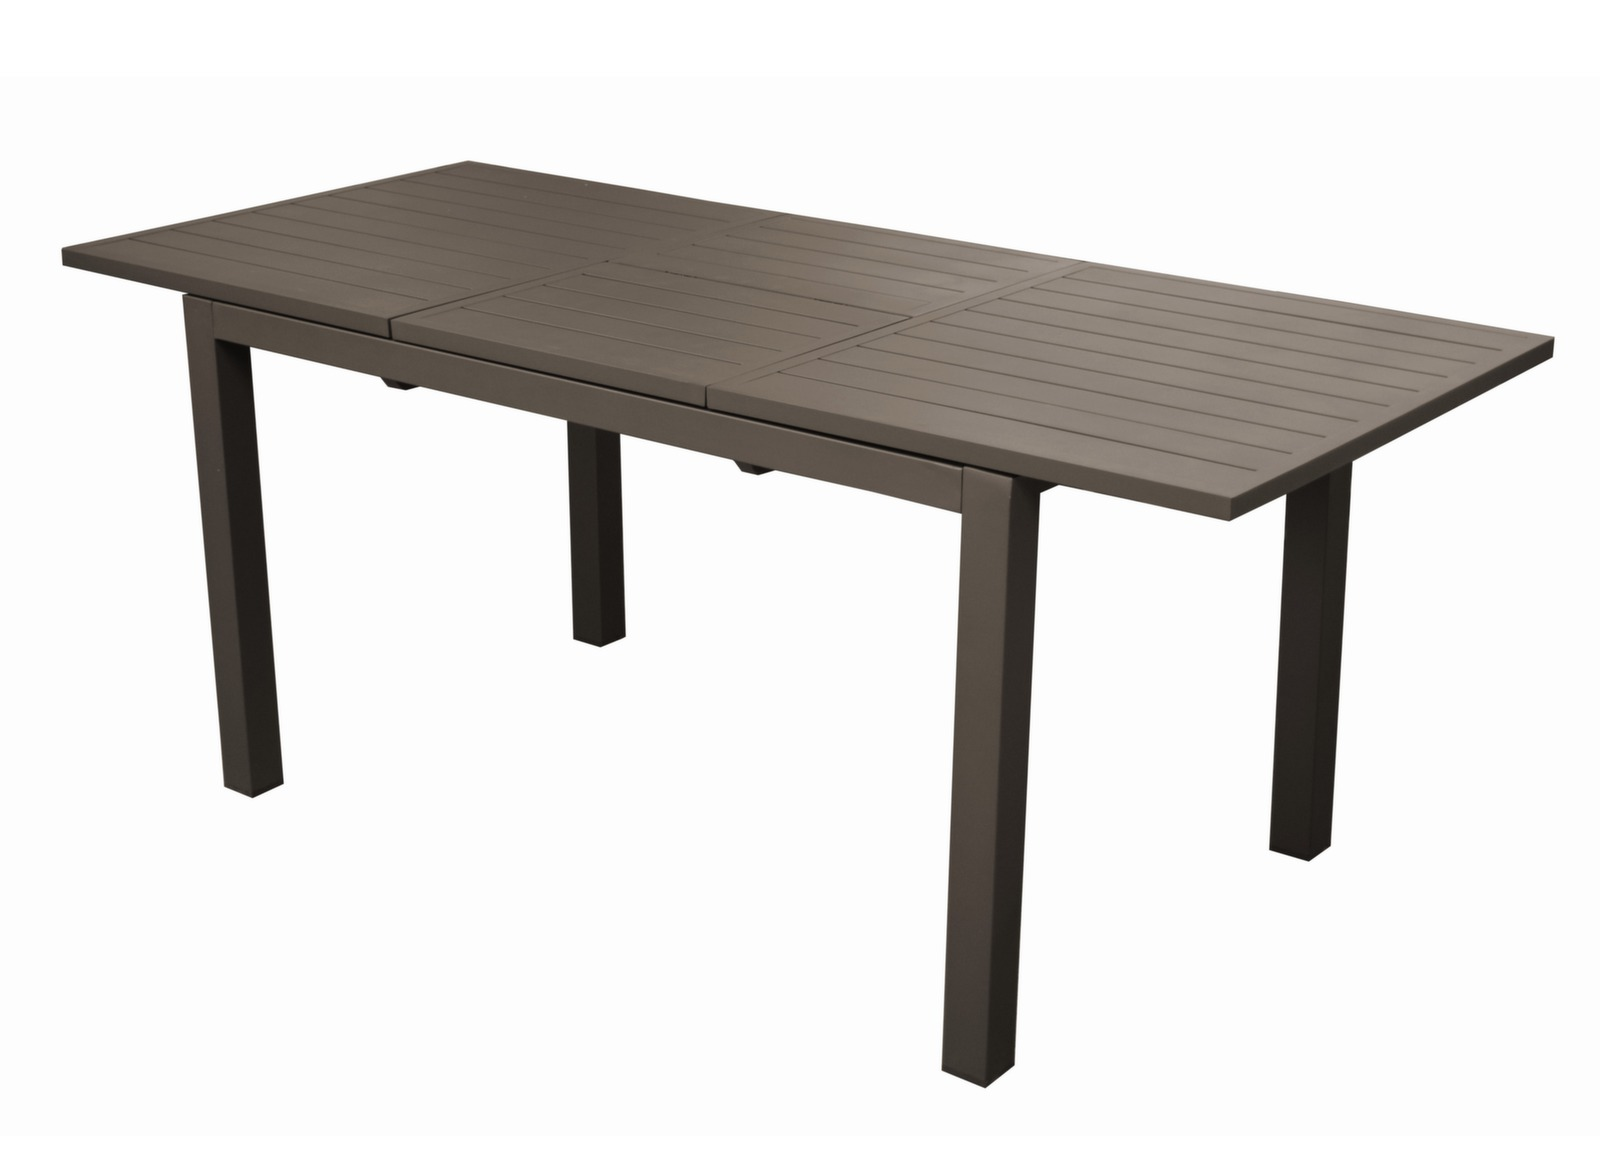 Emejing table de jardin avec rallonge en pvc gallery for Table noir rallonge